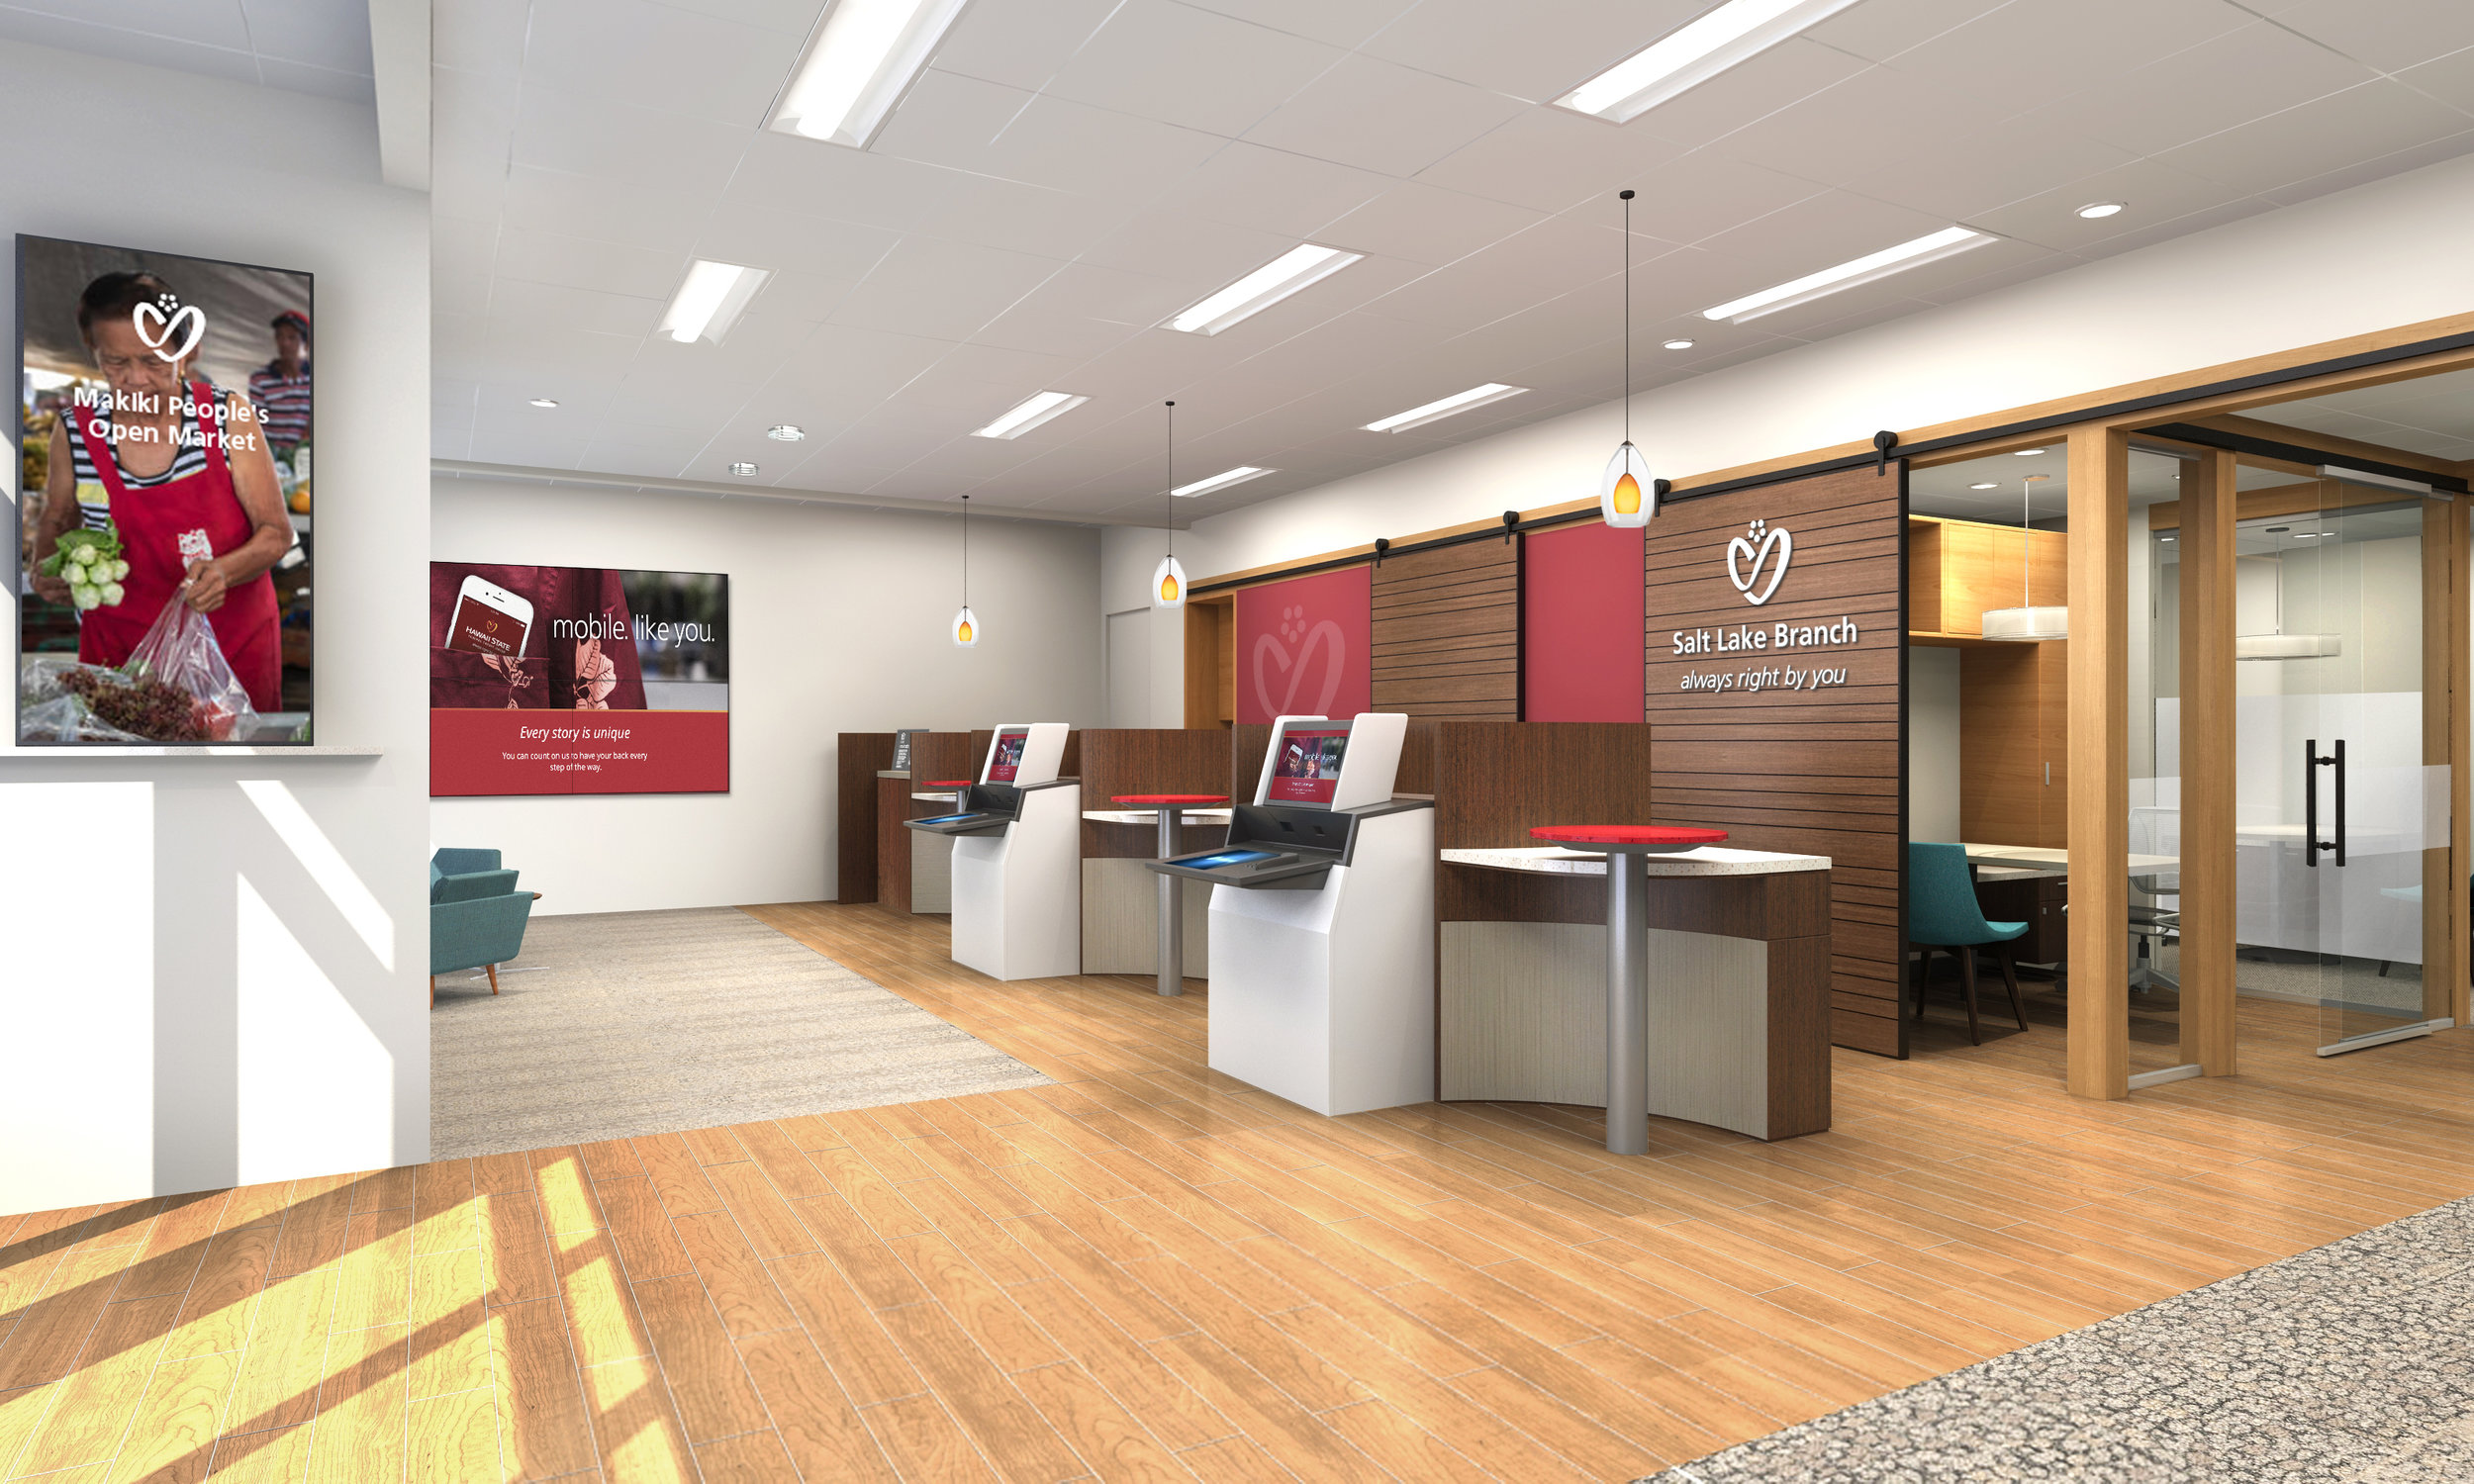 Rendering of HSFCU Salt Lake Branch, Hawaii: Part 1